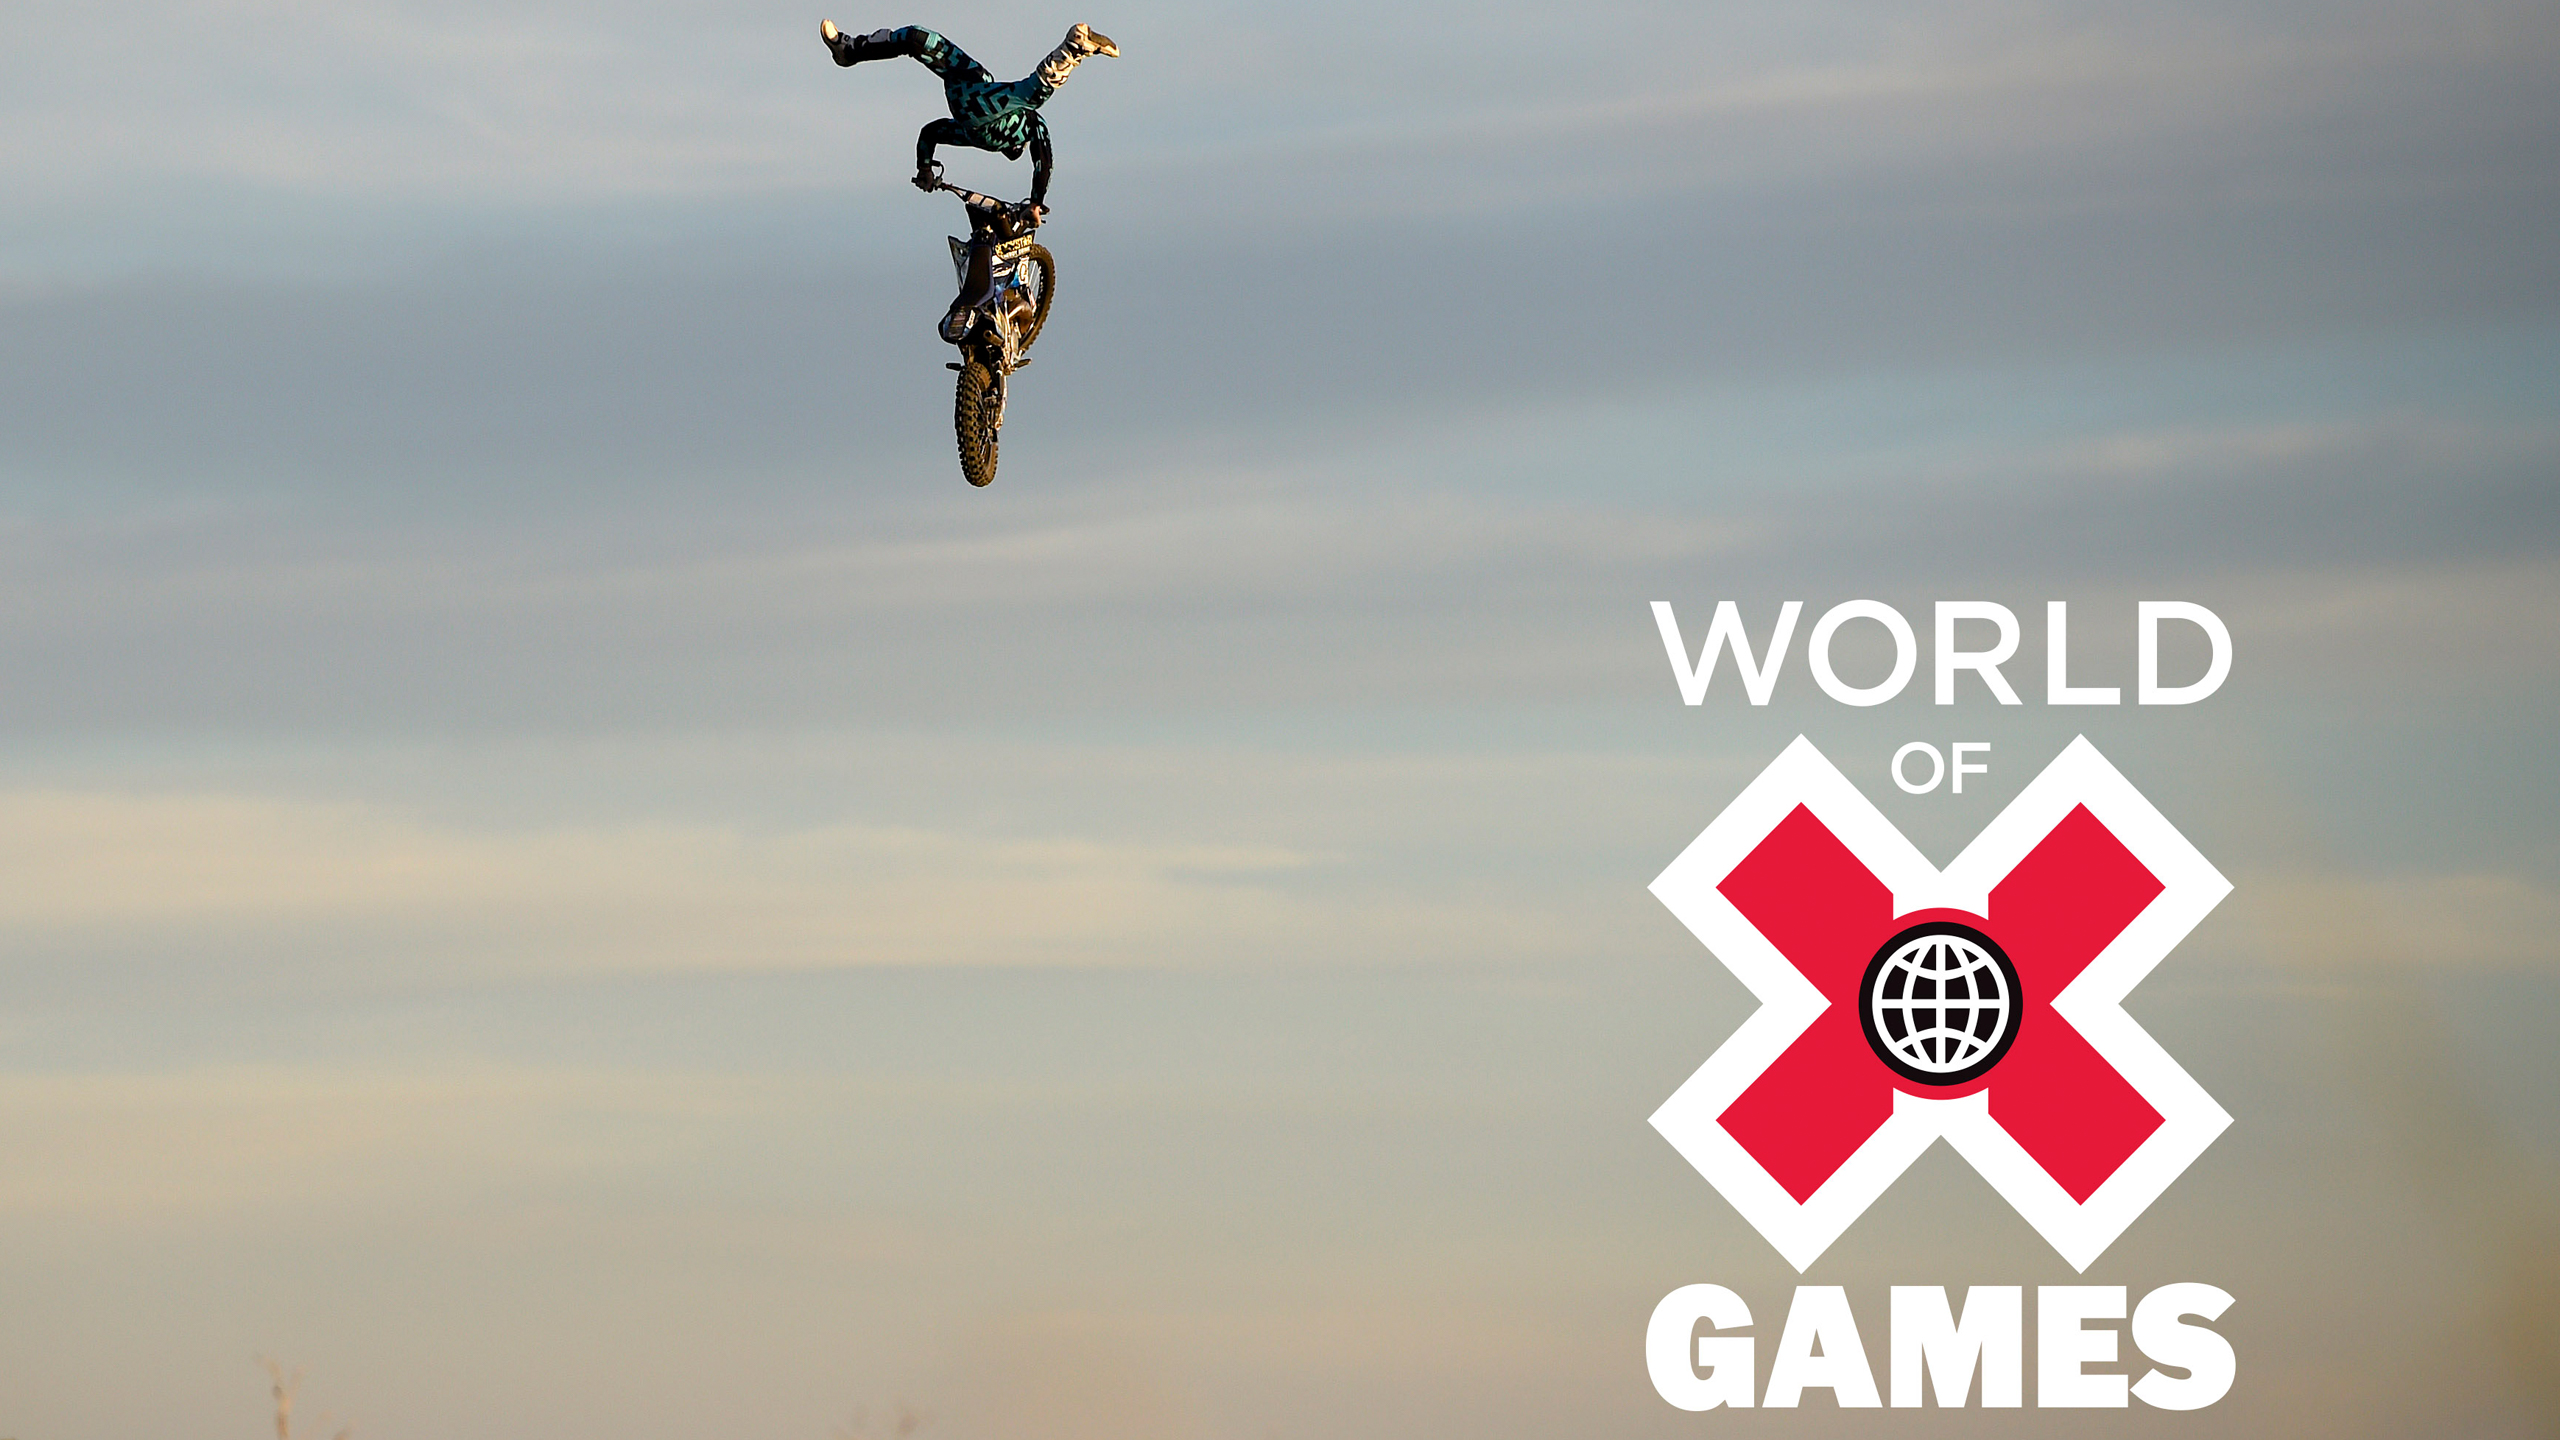 World of X Games: Real Moto 2018